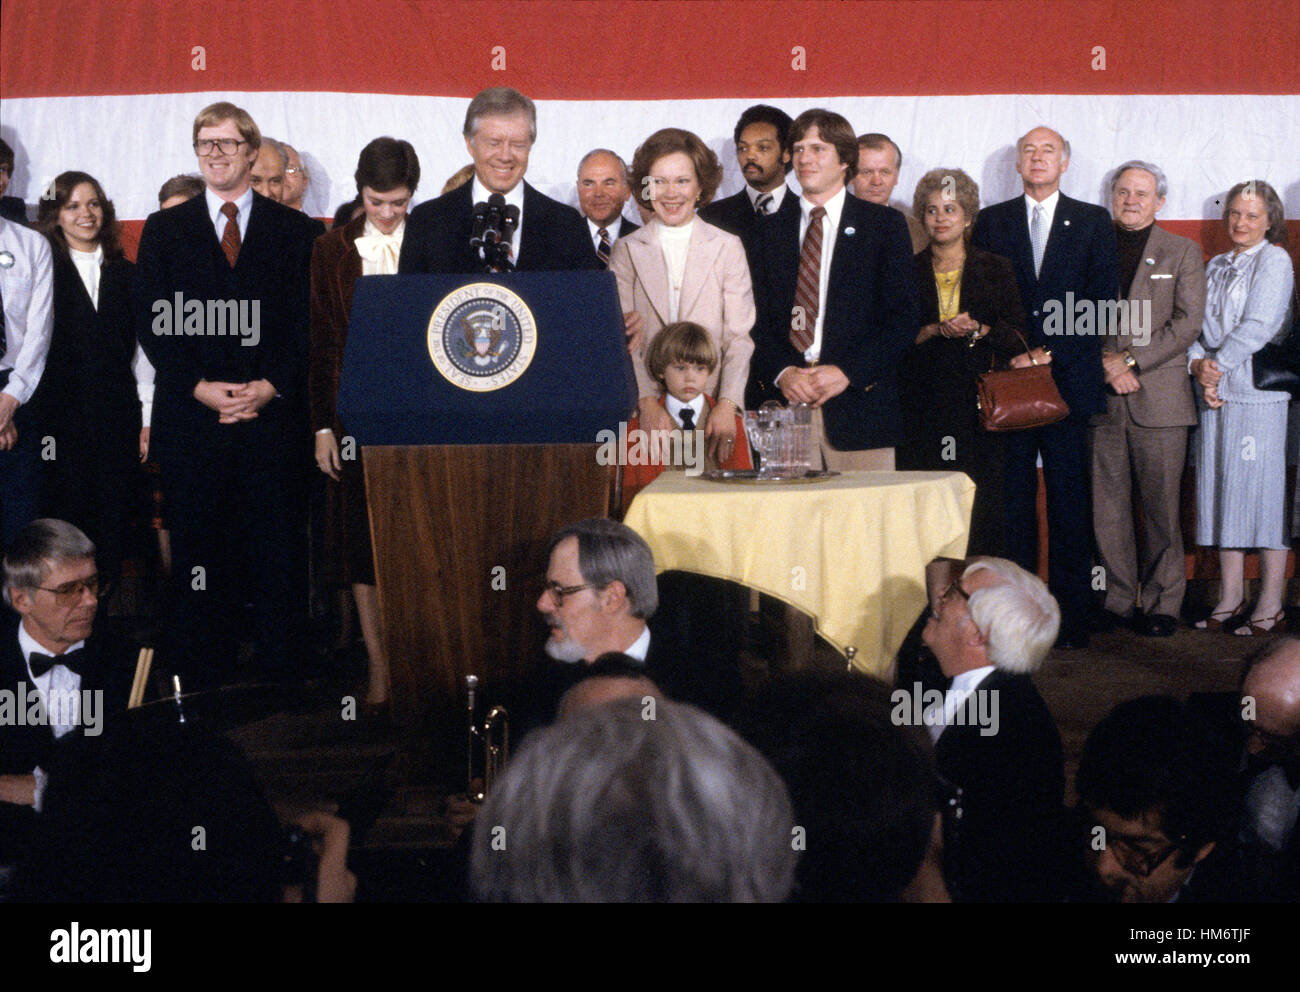 Members of the Carter family including first lady Rosalynn Carter look on as United States President Jimmy Carter Stock Photo